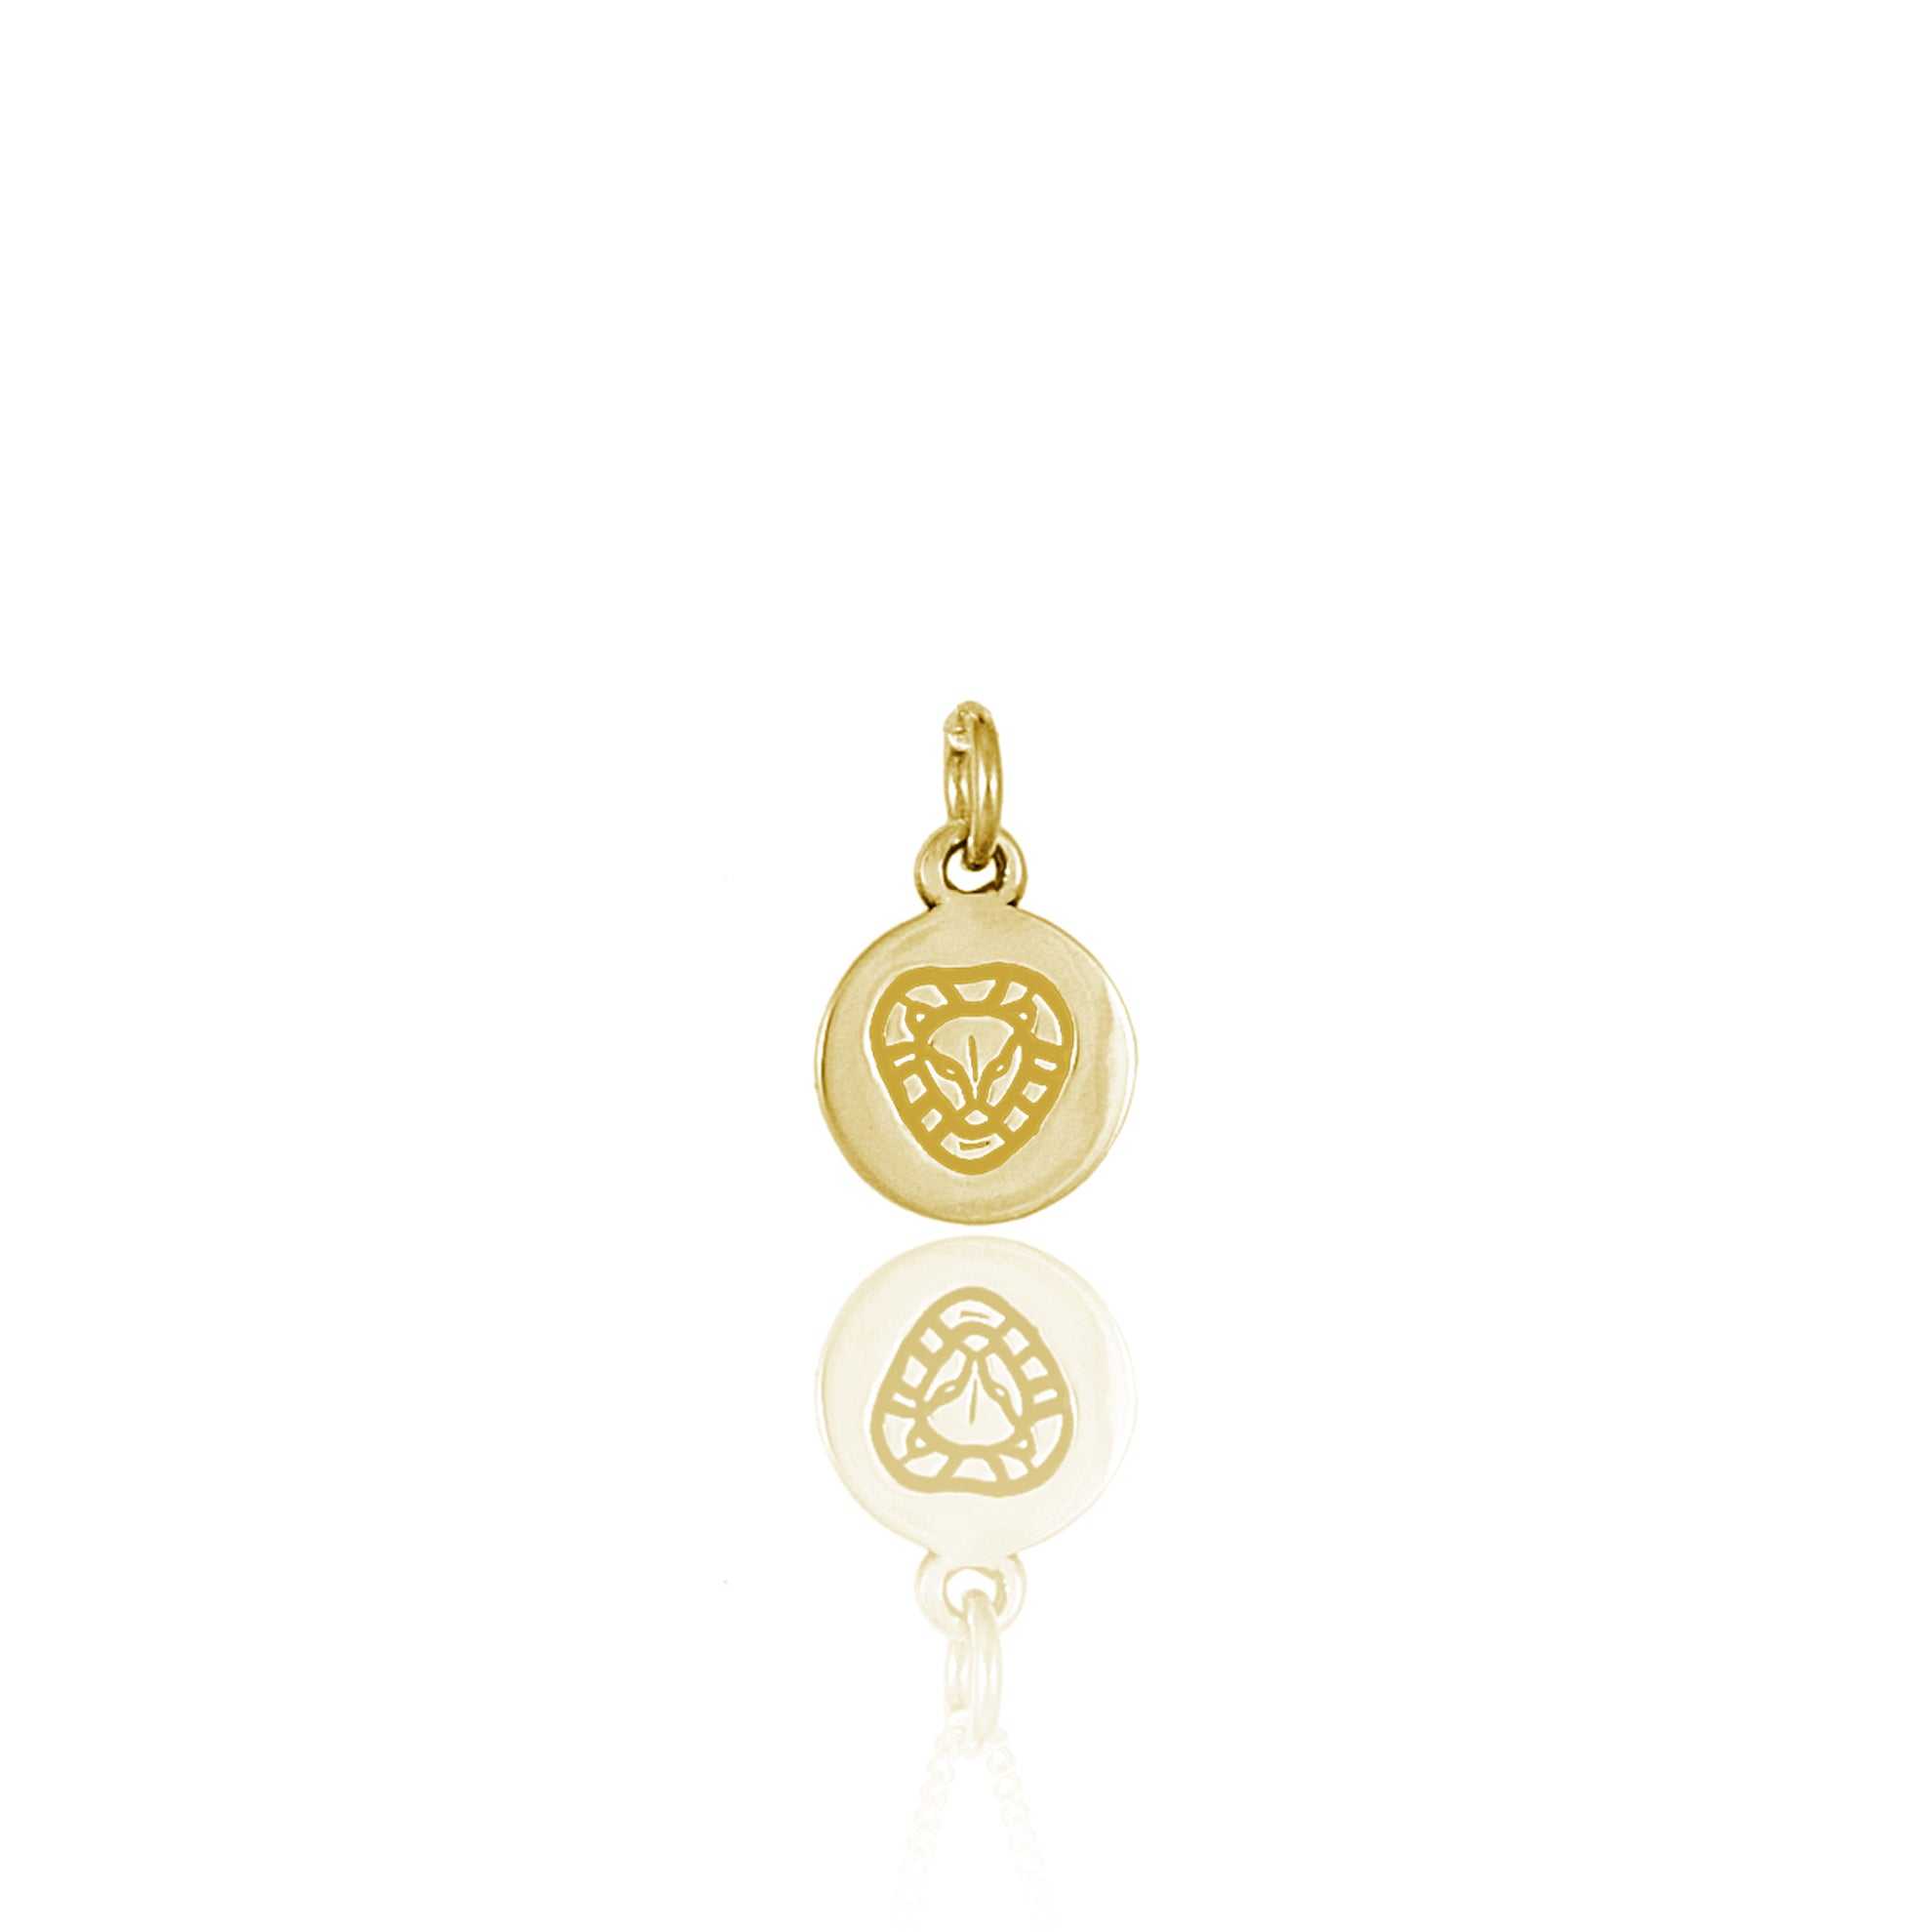 Leo Mini Zodiac Charm - Gold